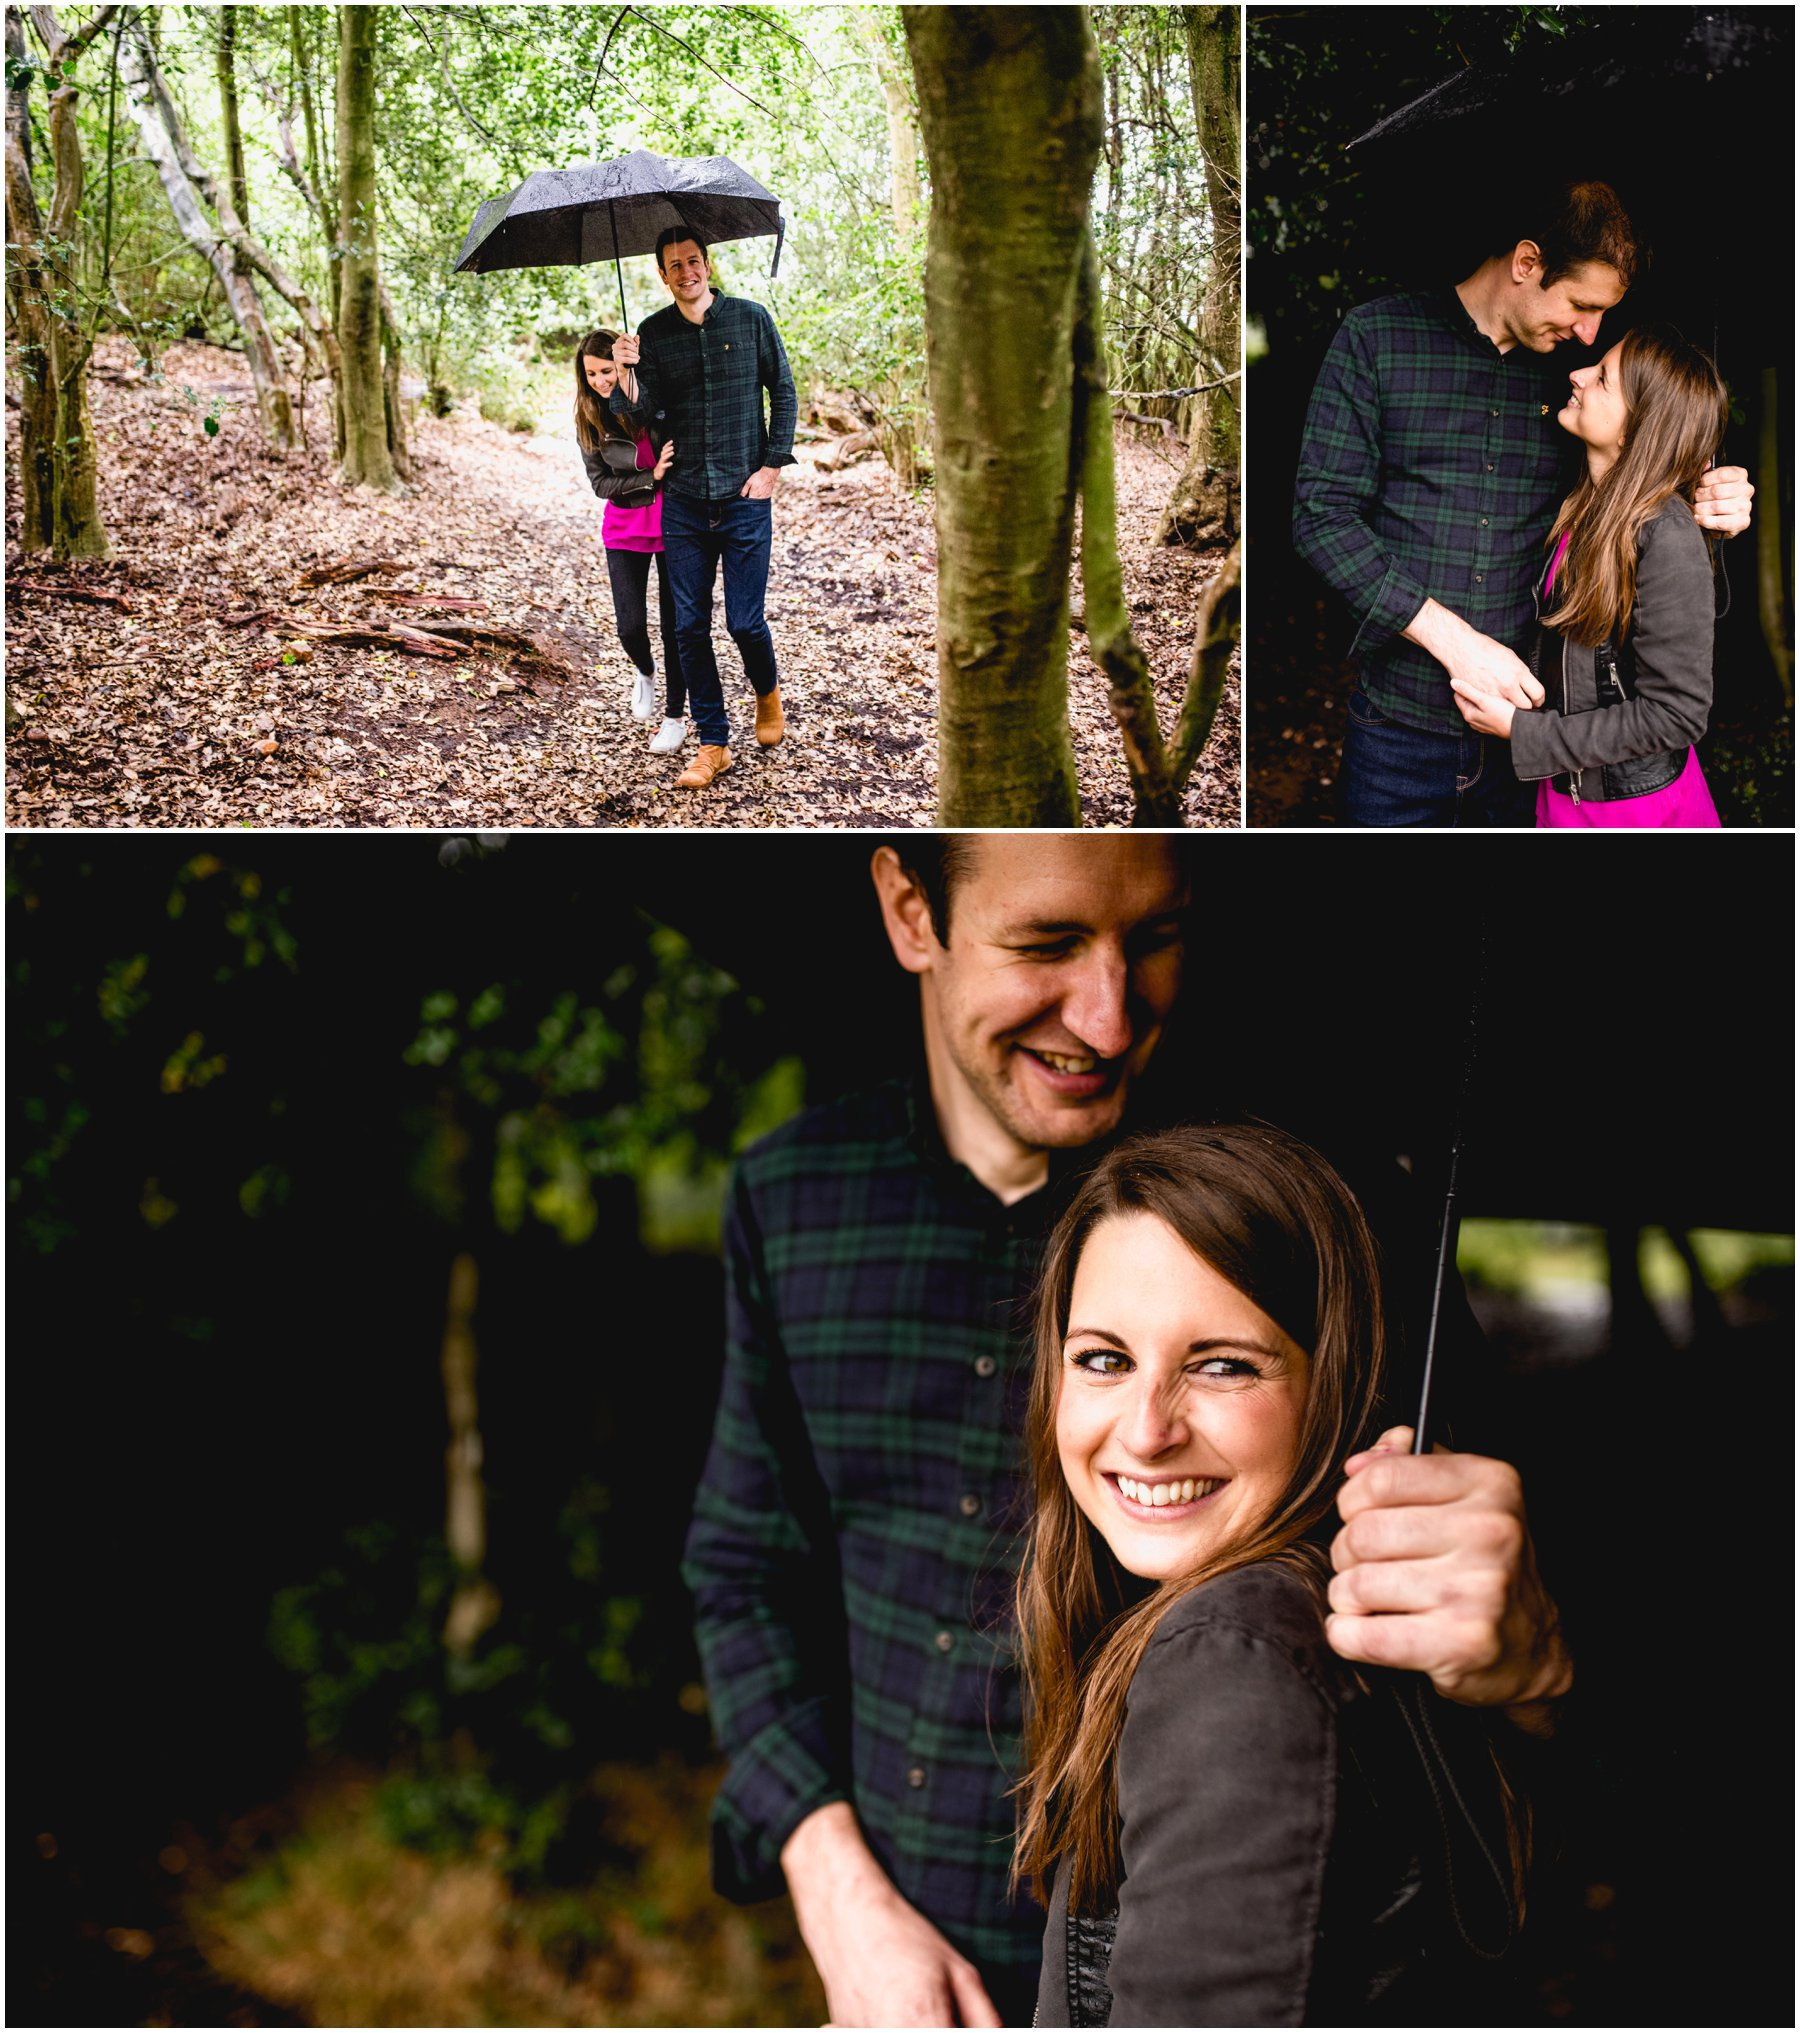 Fiona and Matt Pre Wedding Engagement Shoot in Sutton Park, Sutton Coldfield by West Midlands Wedding Photographer, Lisa Carpenter Photography